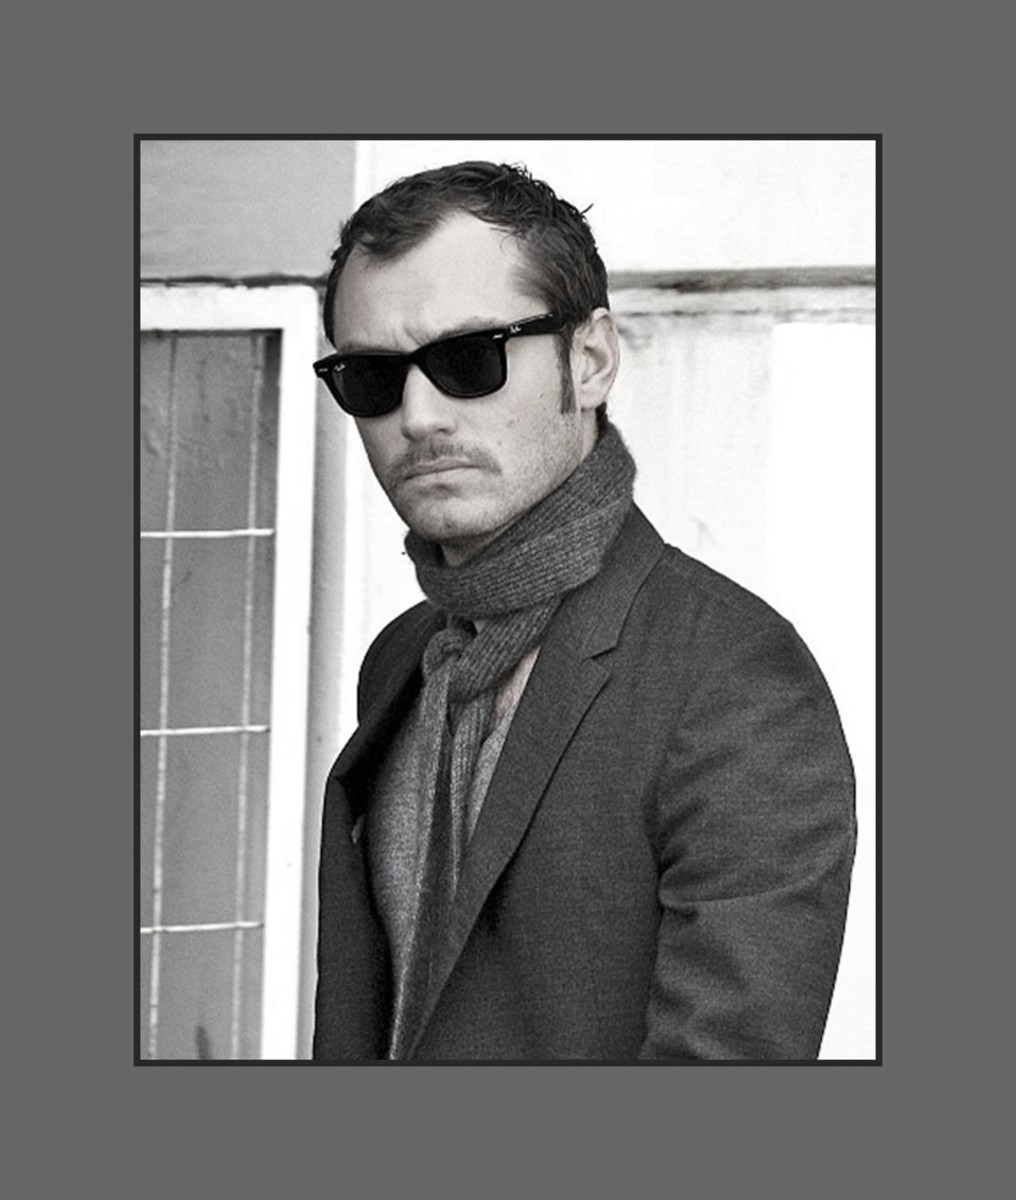 Jude Law's hair is cut short layered all over with long thin sideburns, styled flat giving a bold look - 2013 Hairstyles for Men with Balding Thinning Hair Style Cuts Trends